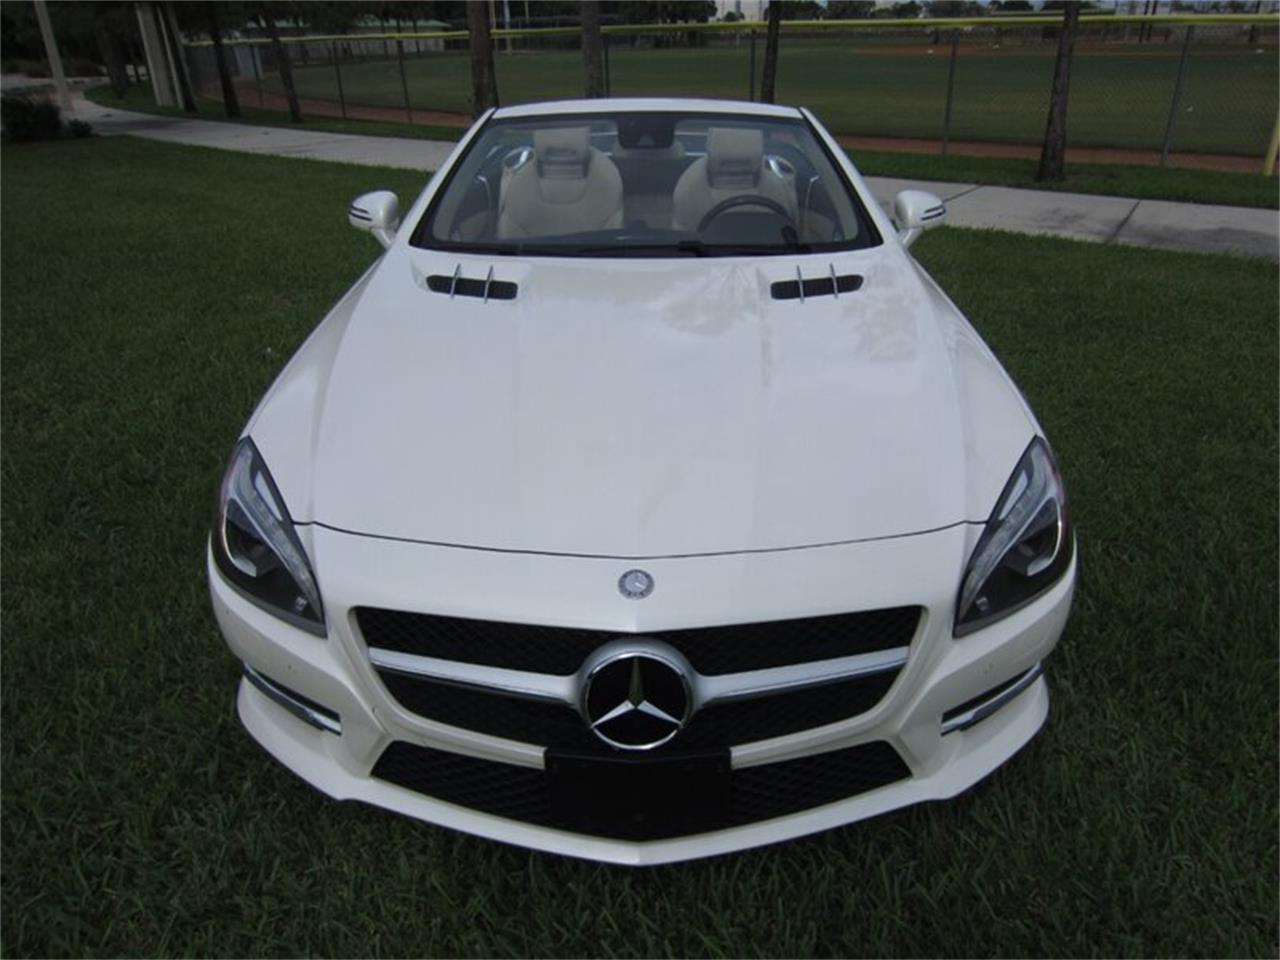 2014 Mercedes-Benz SL550 (CC-1261058) for sale in Delray Beach, Florida